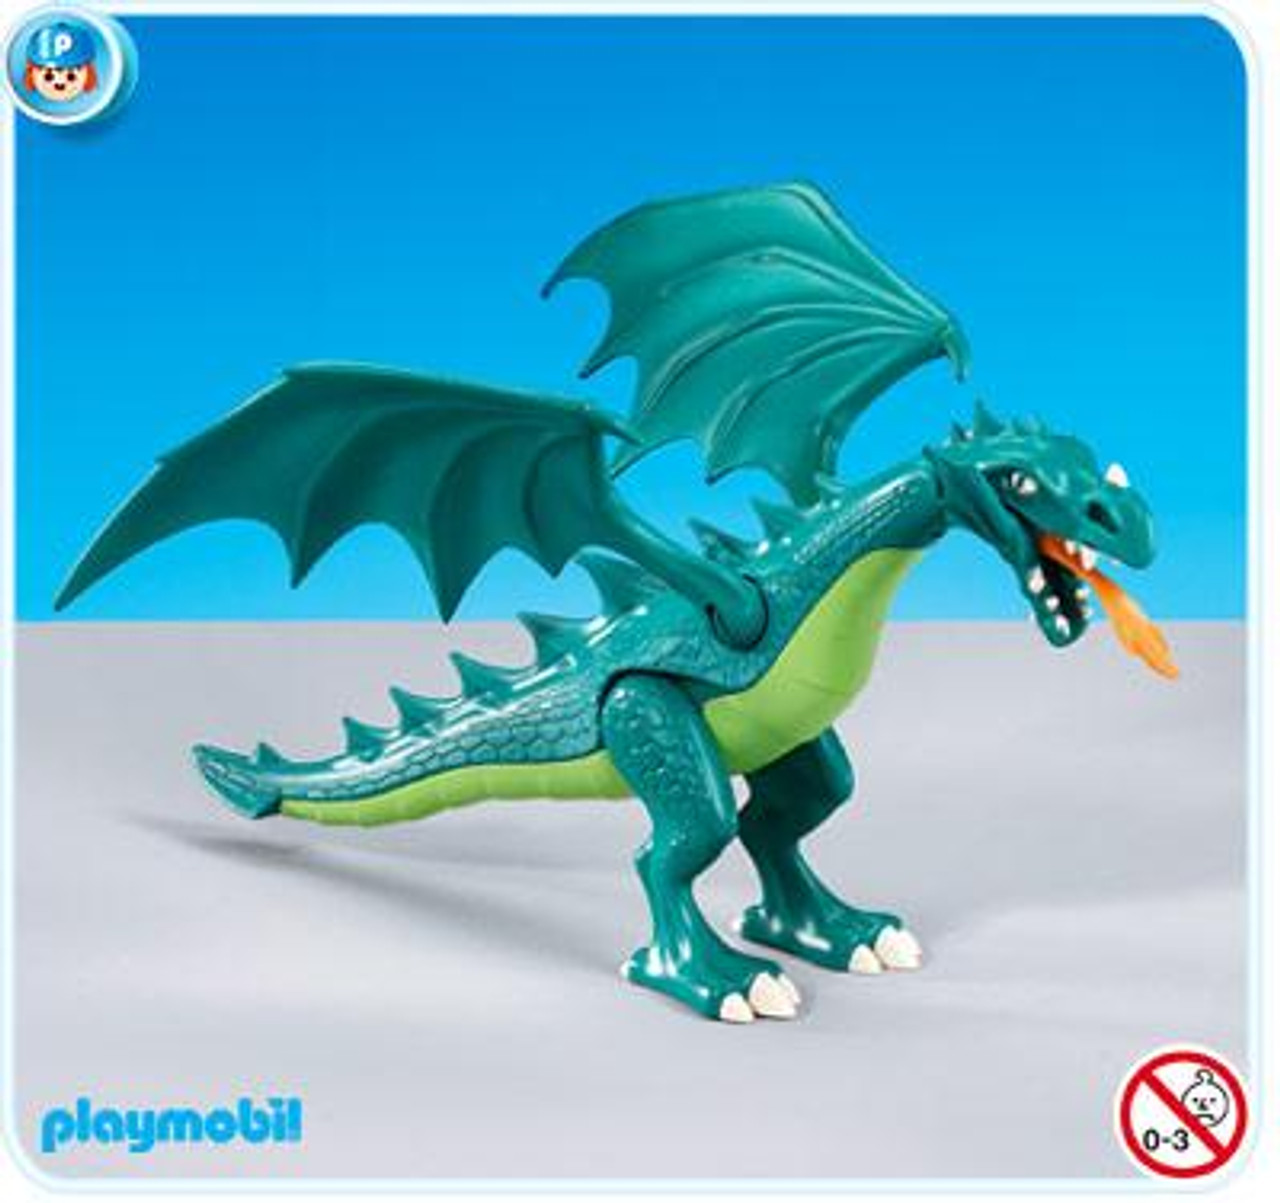 Playmobil Dragon Land Green Dragon Set #7481